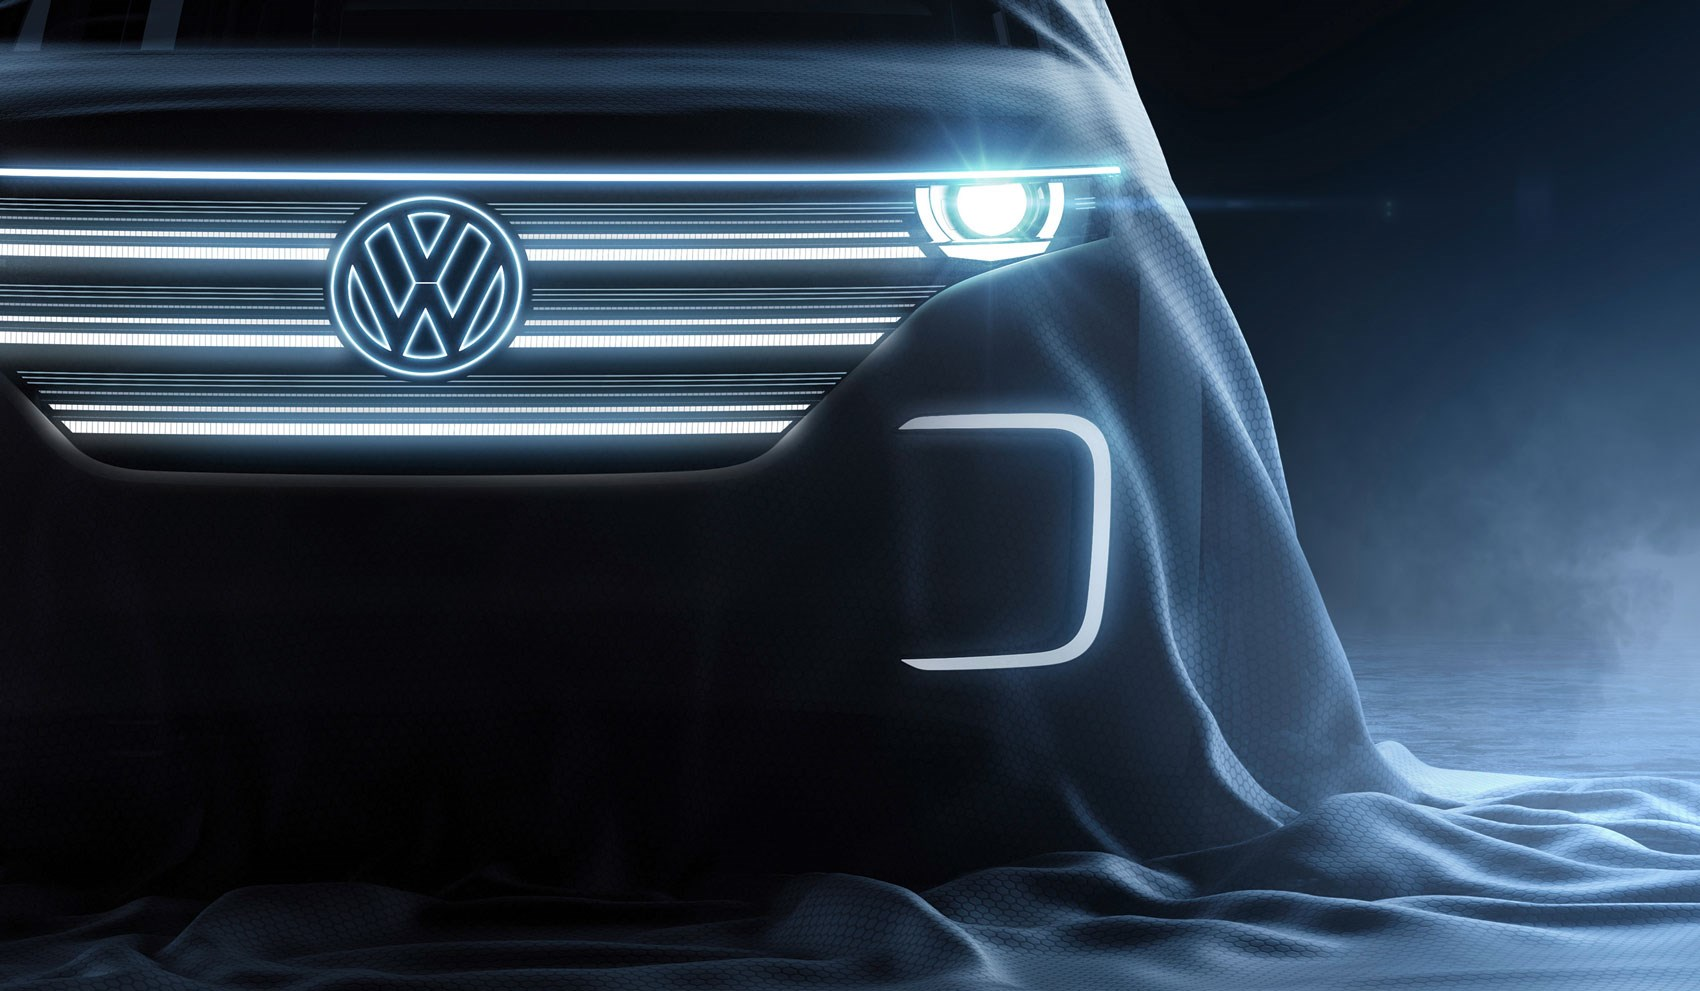 Concept car magazine cool car wallpapers - The Electric Vw Coming To The Ces